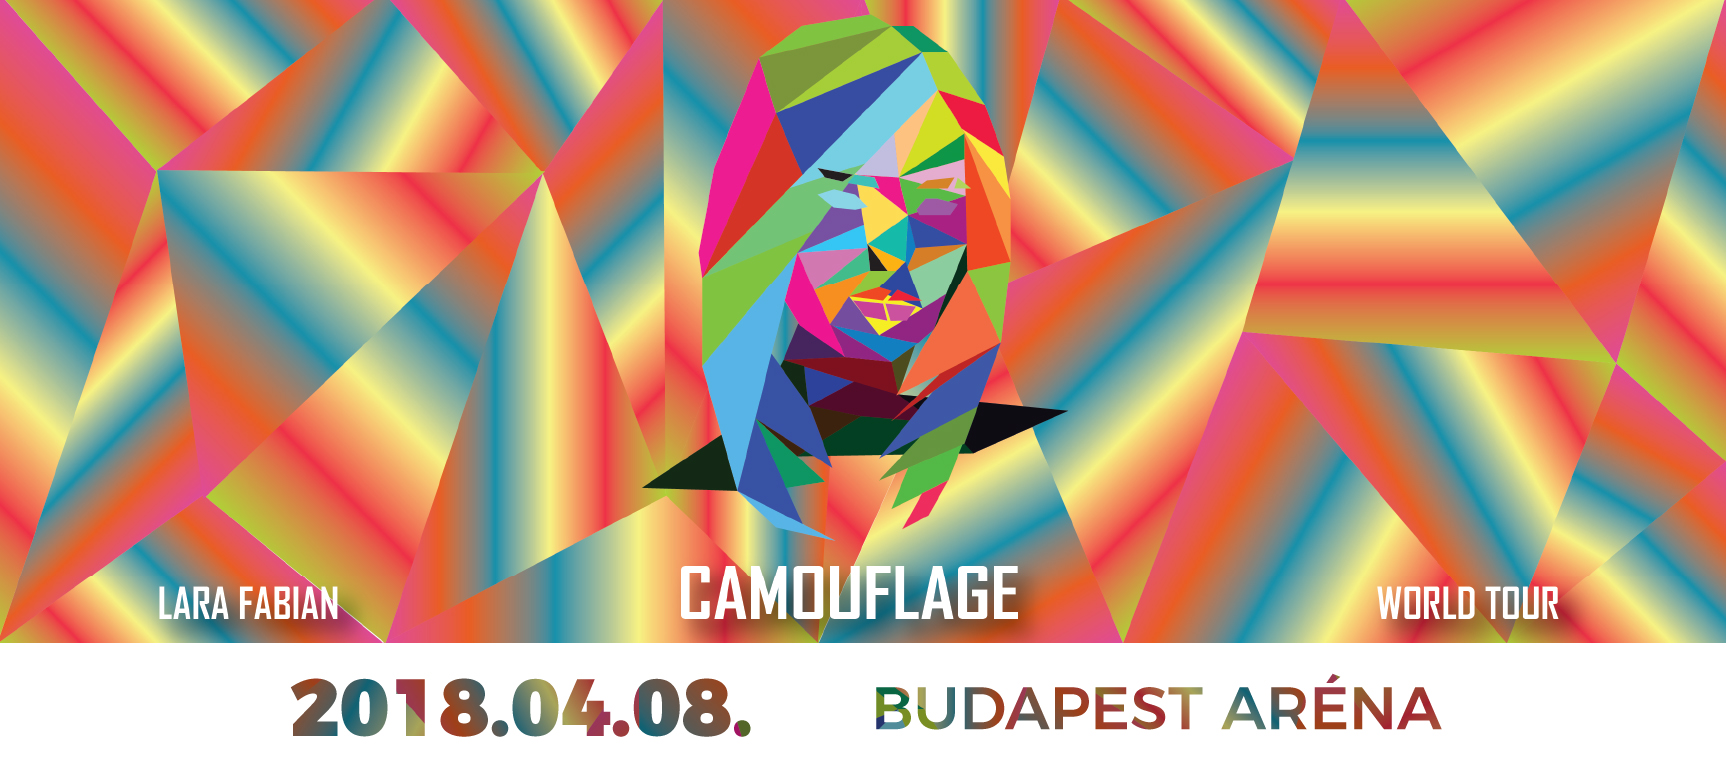 Microsoft Word - PRESS RELEASE - CAMOUFLAGE WORLD TOUR.docx